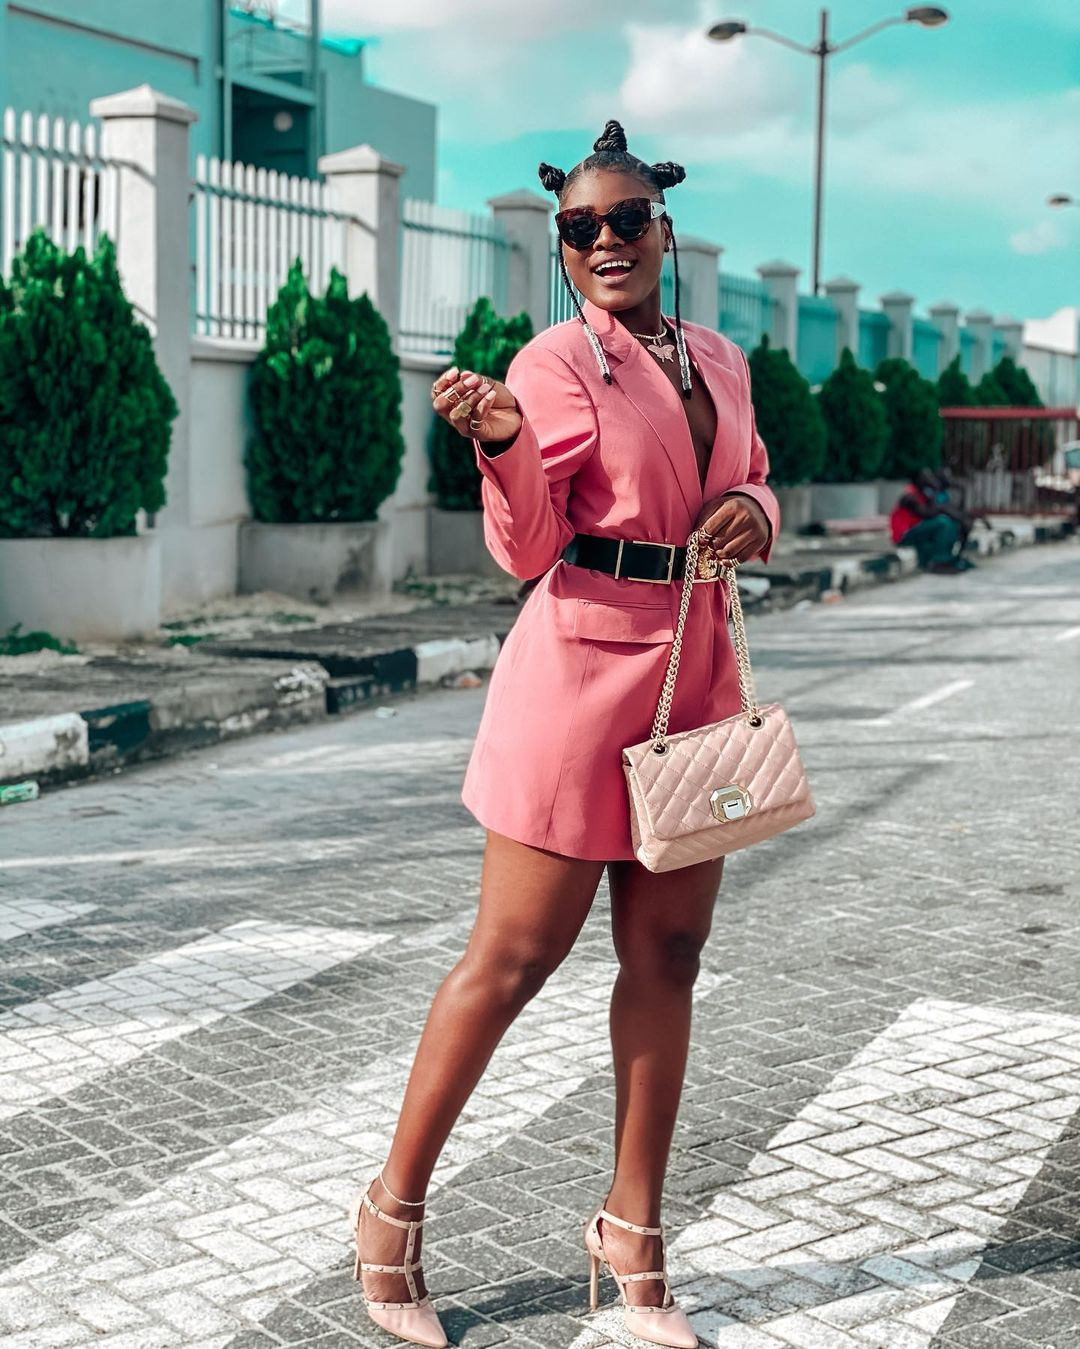 Alex Unusual Perfect Style For A Calm Personality